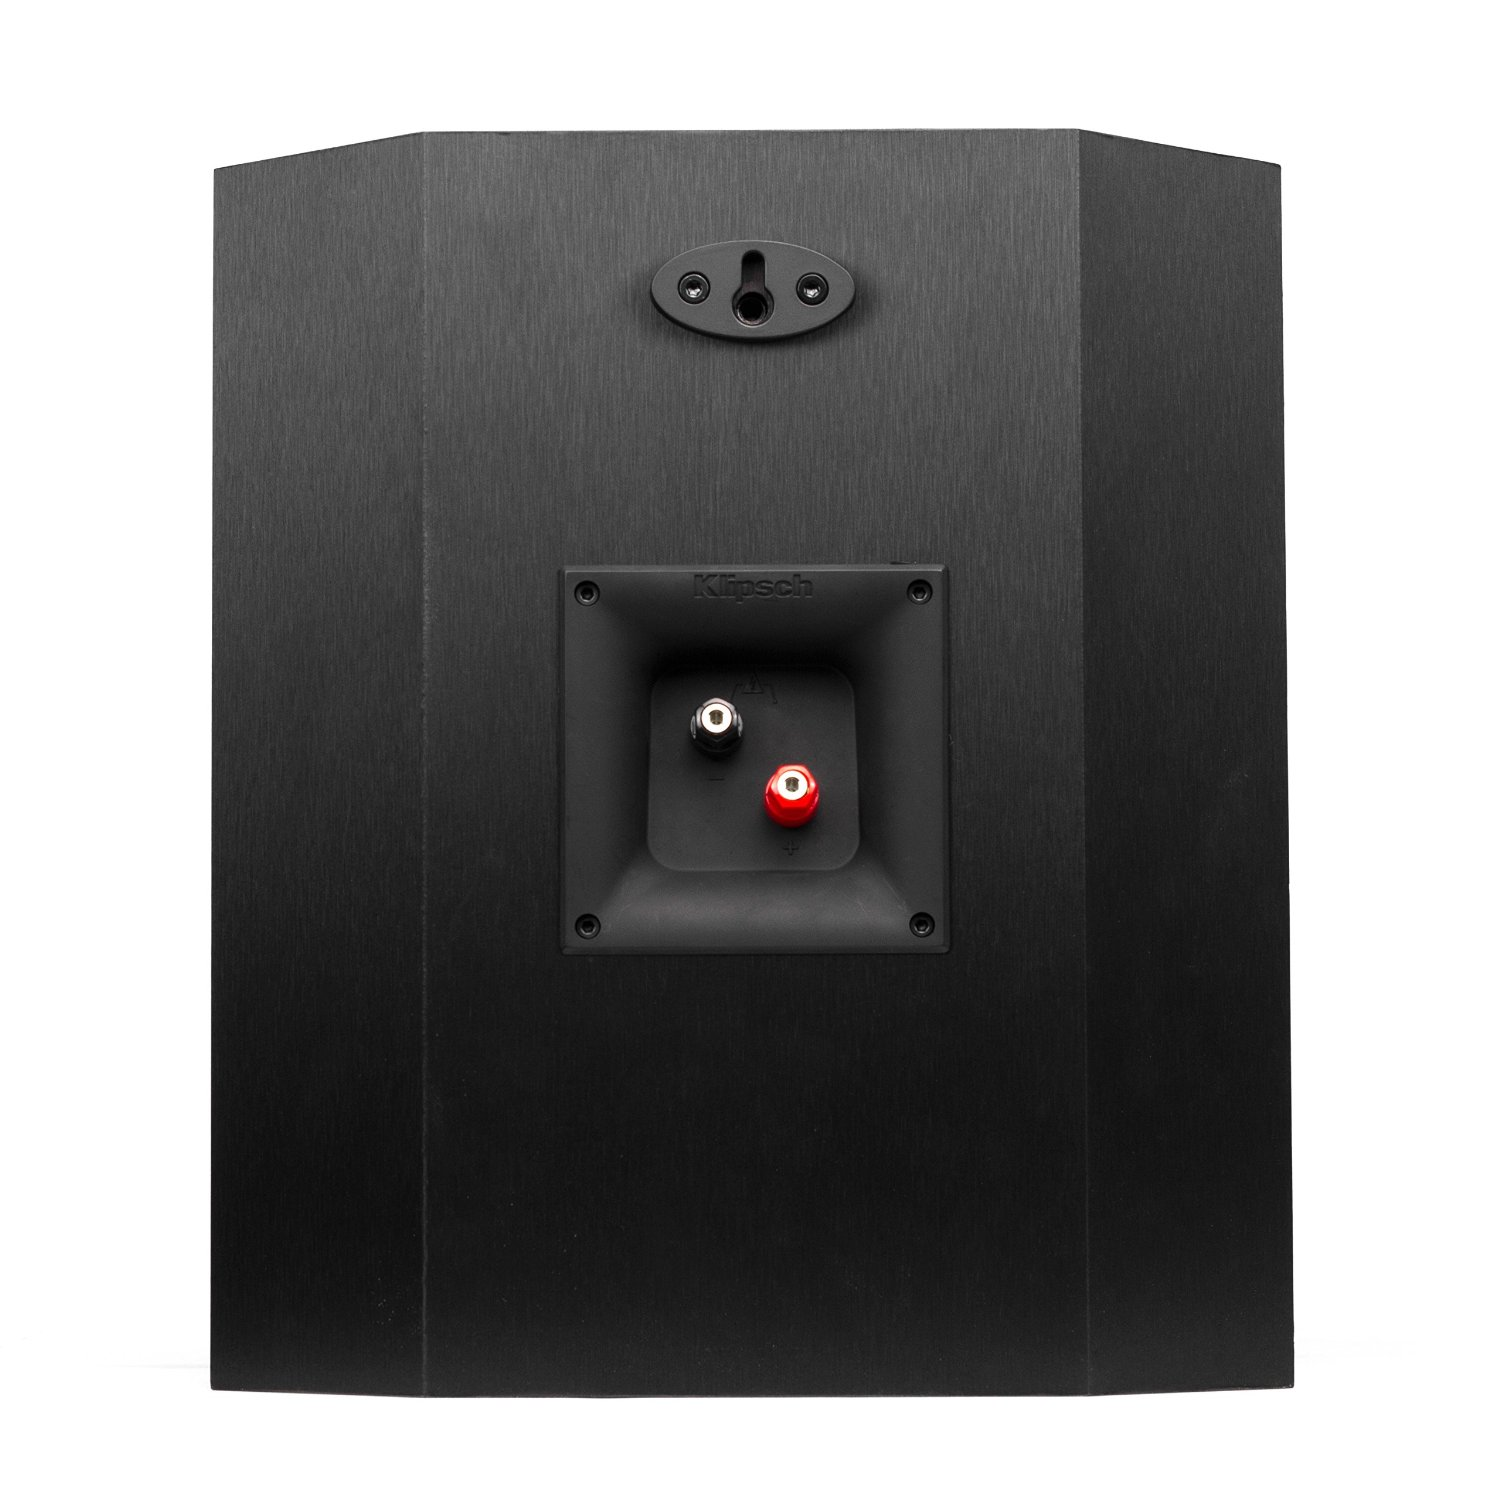 Klipsch-RP-250S-back Take A Look About Passport Premiere Review with Exciting Photos Cars Review